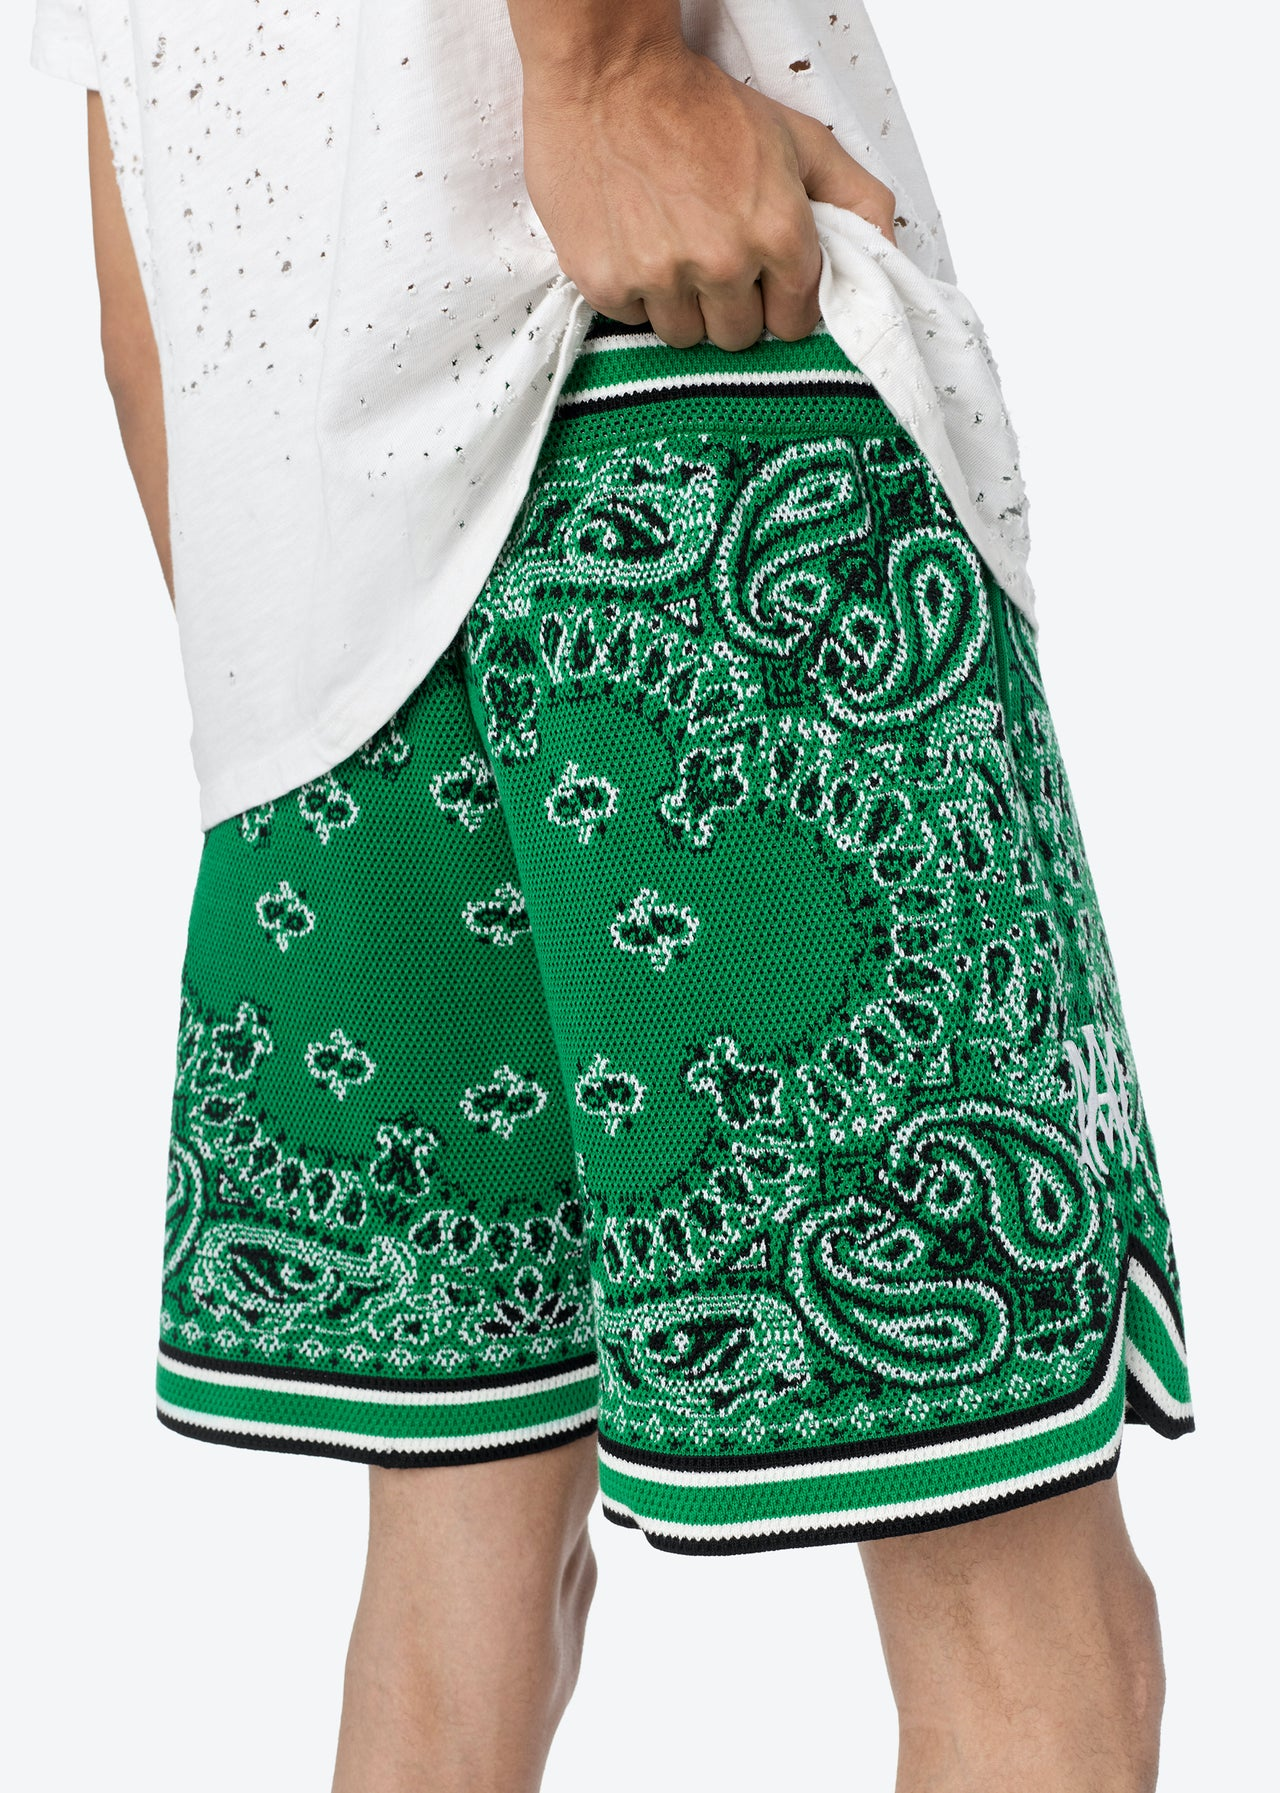 BANDANA B-BALL SHORTS - TENNIS GREEN